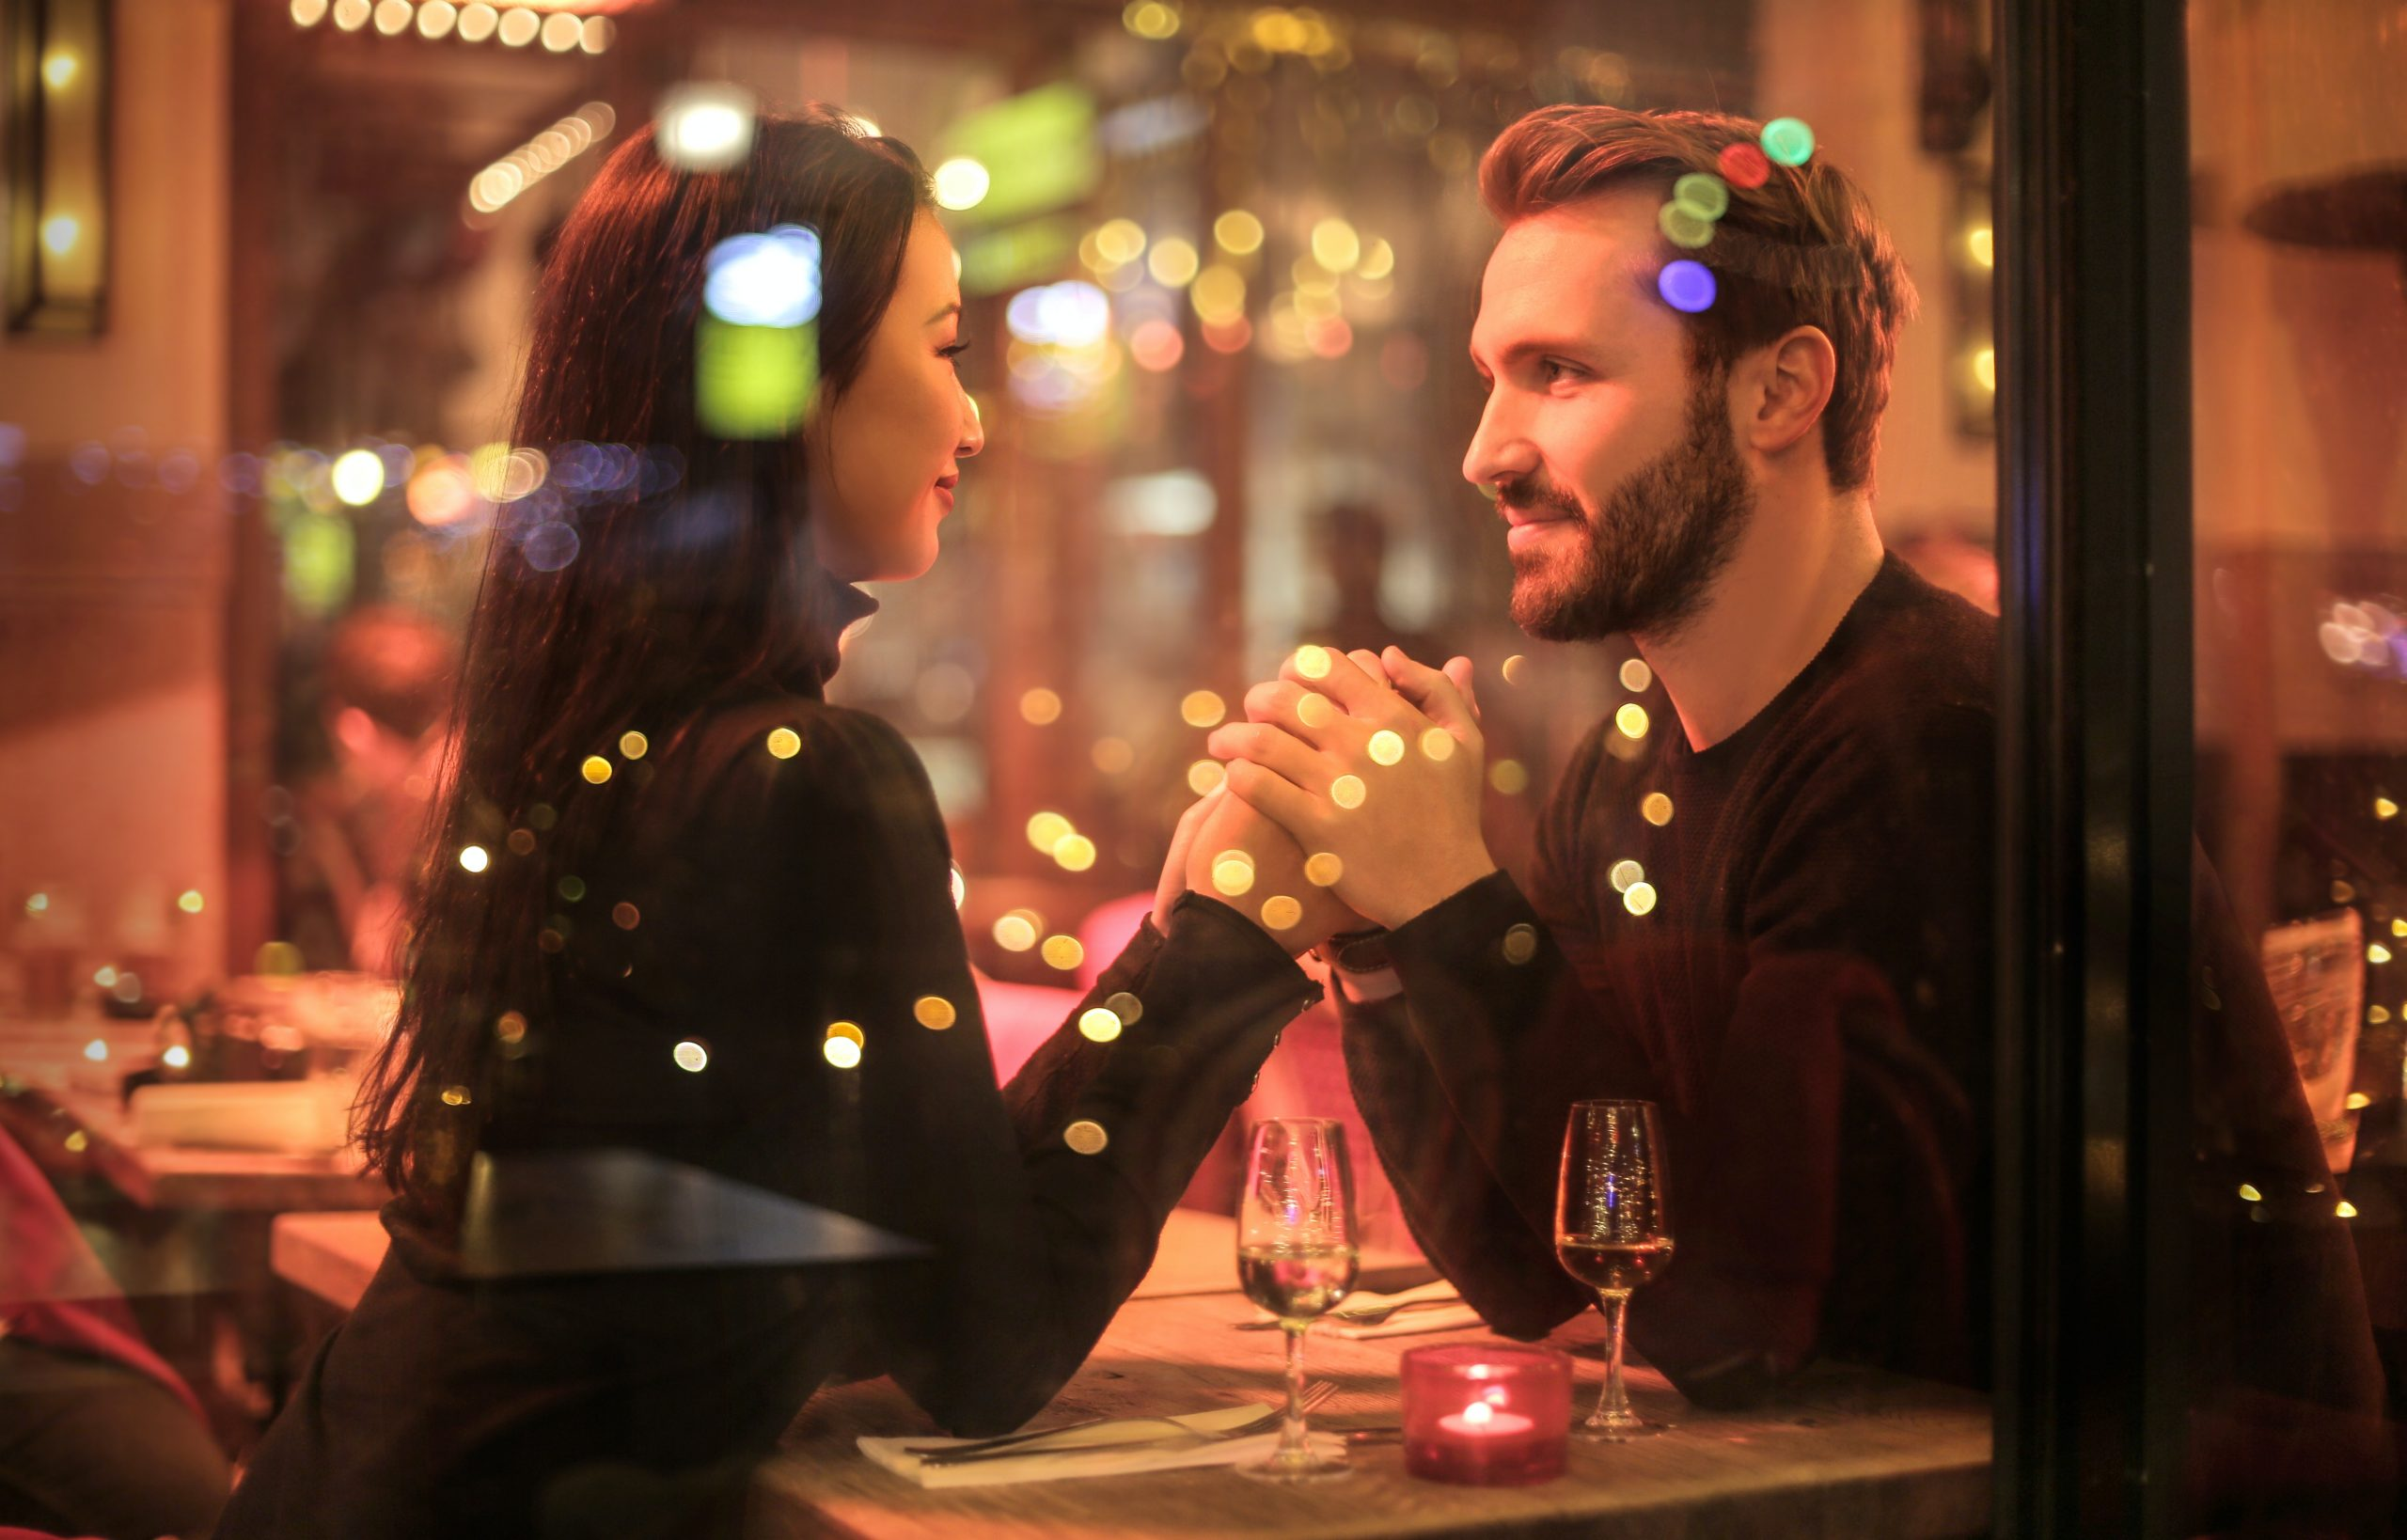 A man and a woman hold hands looking at each other at a restaurant